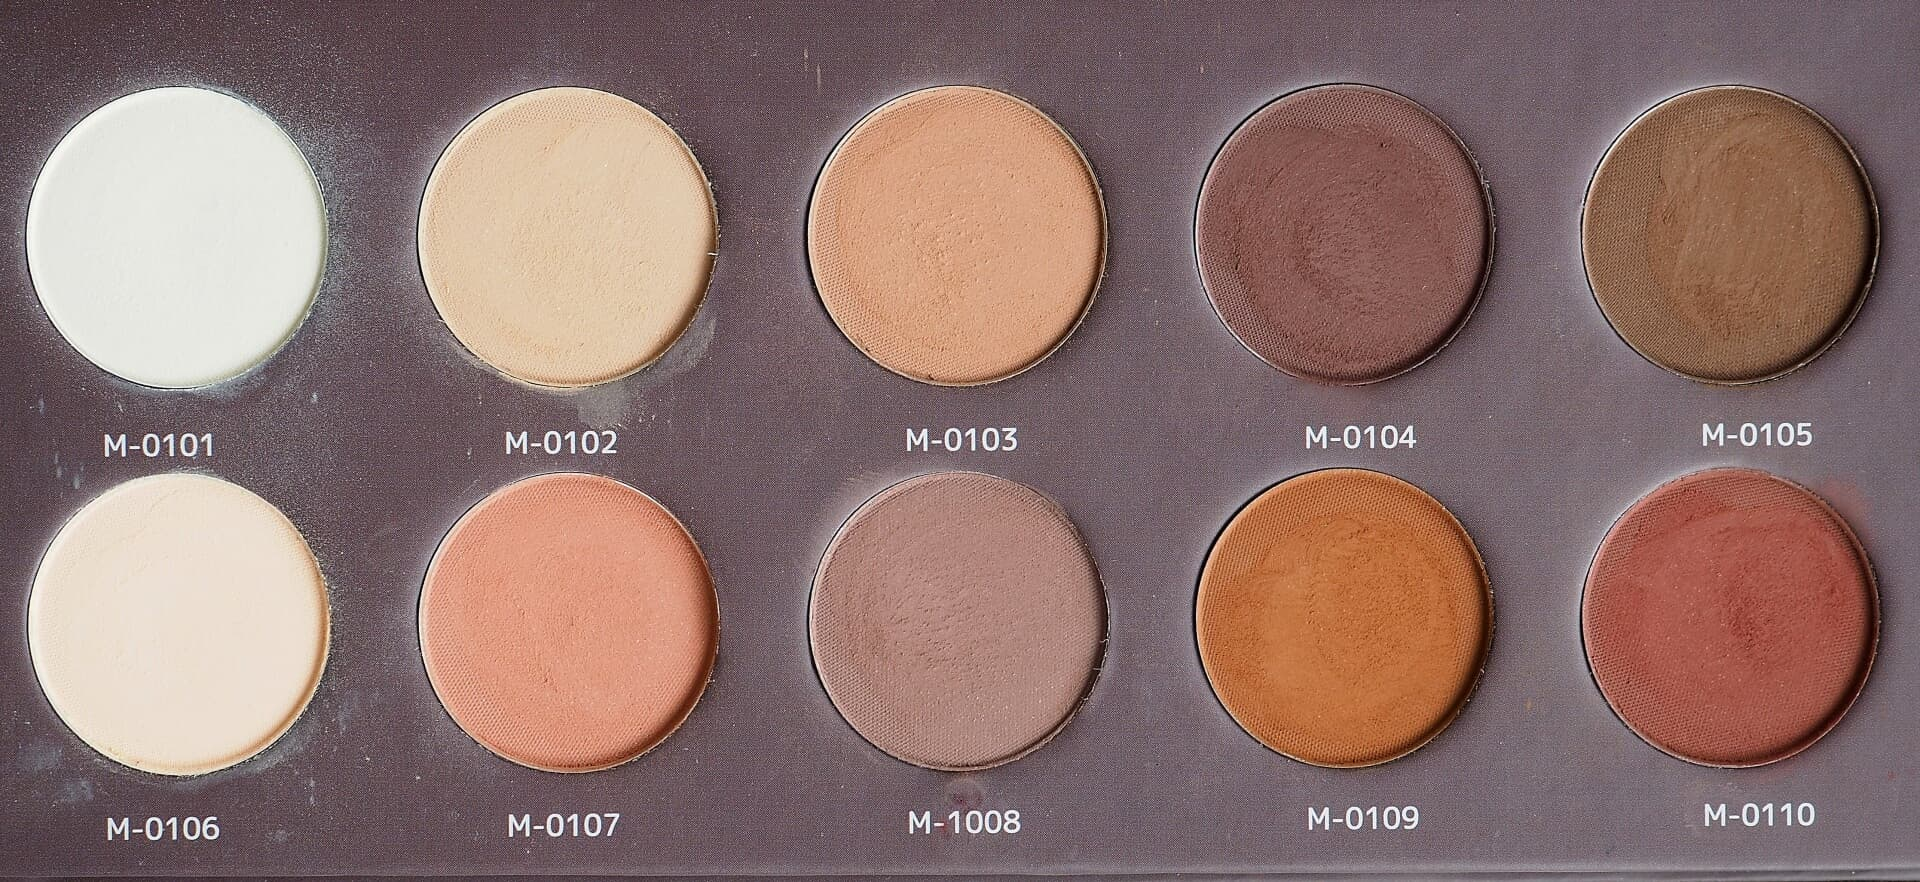 AFFECT NATURALLY MATTE EYESHADOWS PALETTE